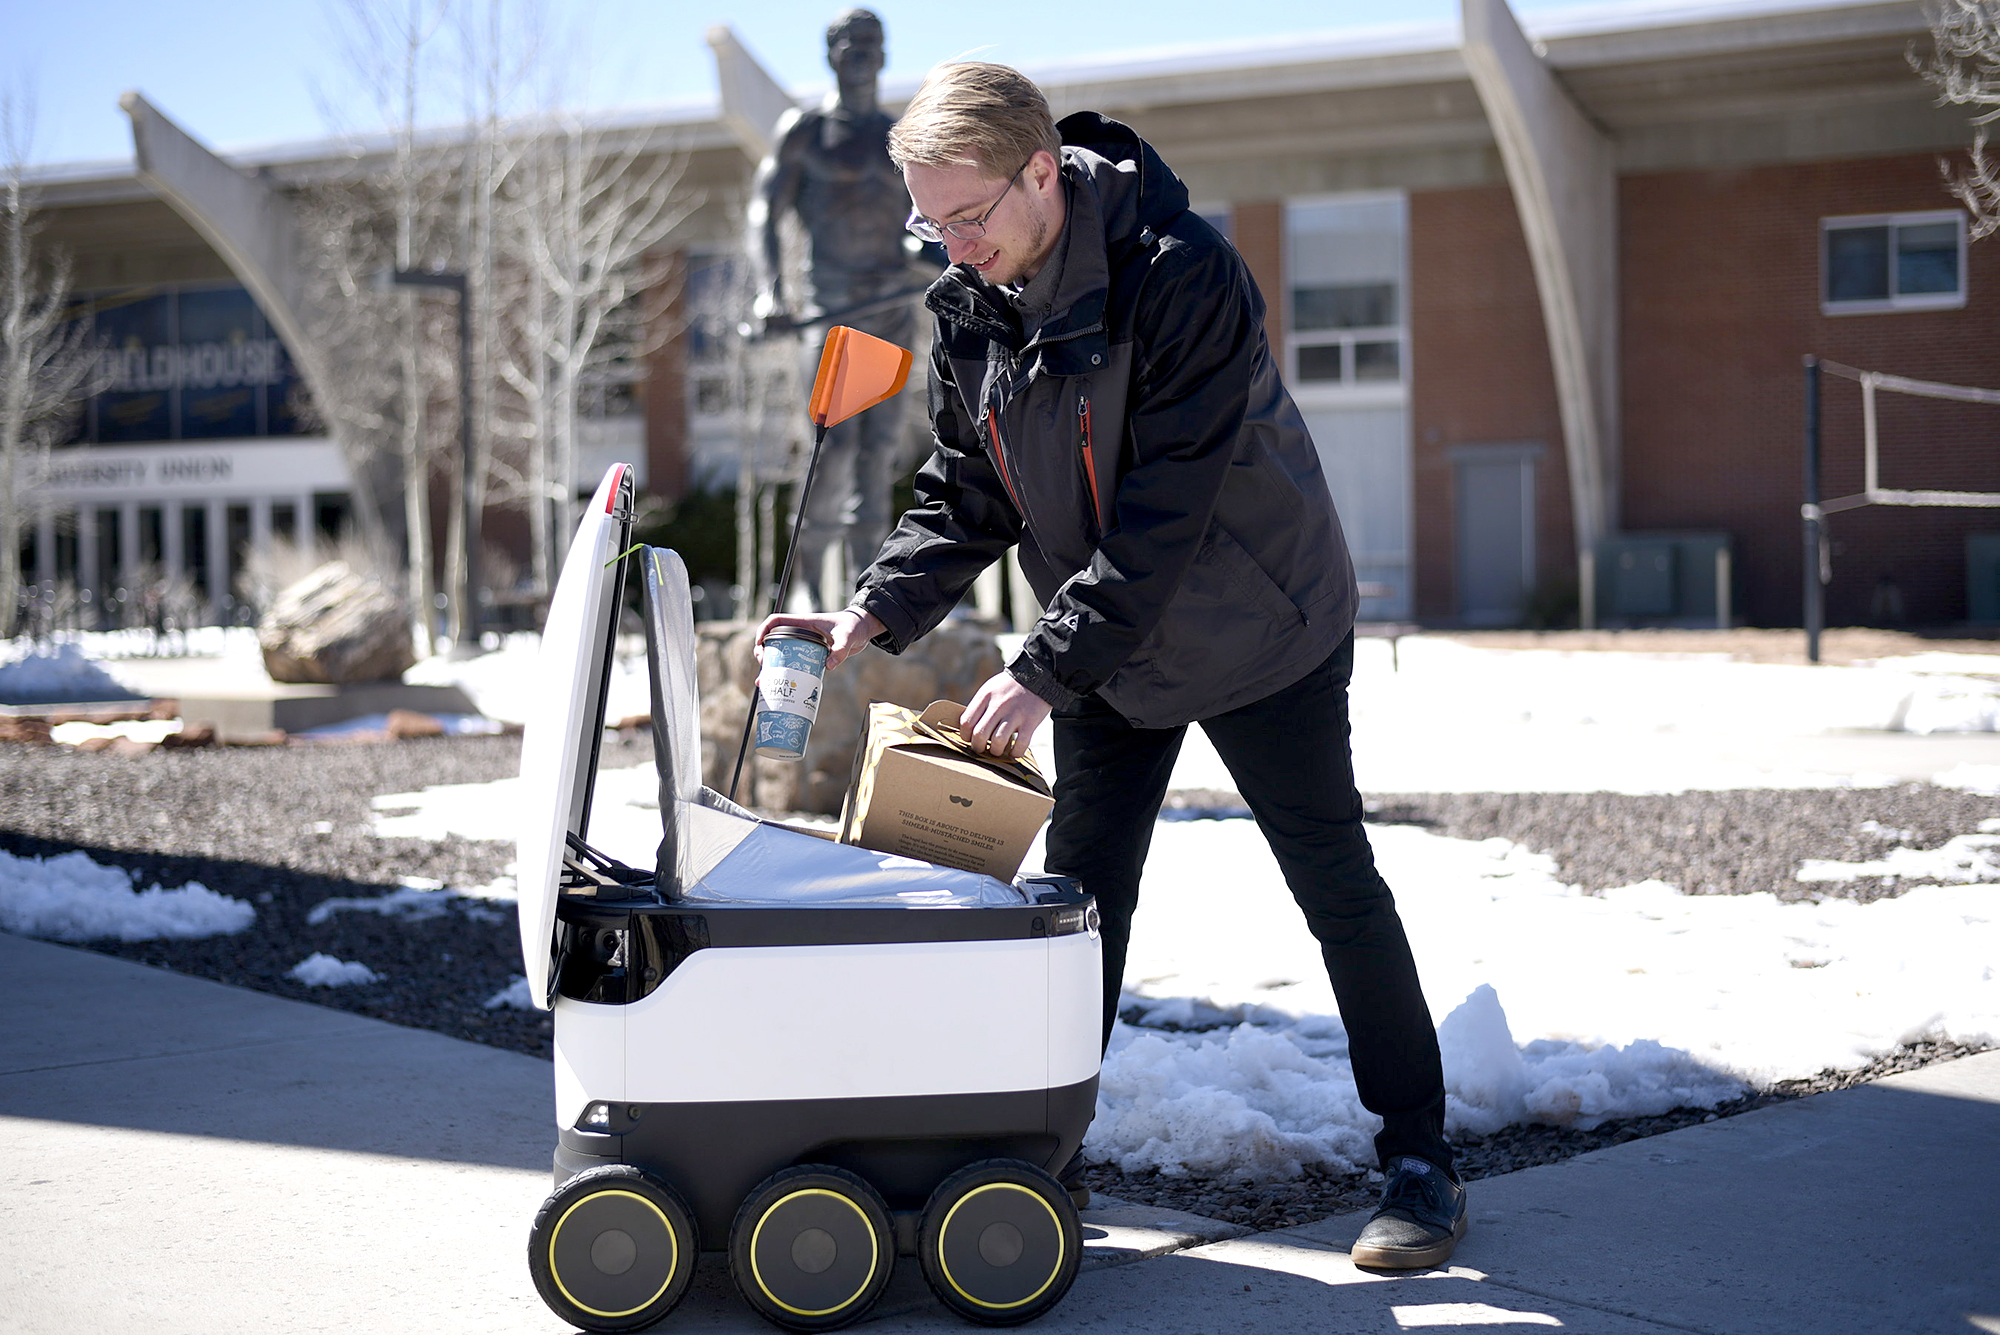 Robots Are Now Bringing Breakfast to College Kids in Arizona: '[This Is] a Lifesaver'